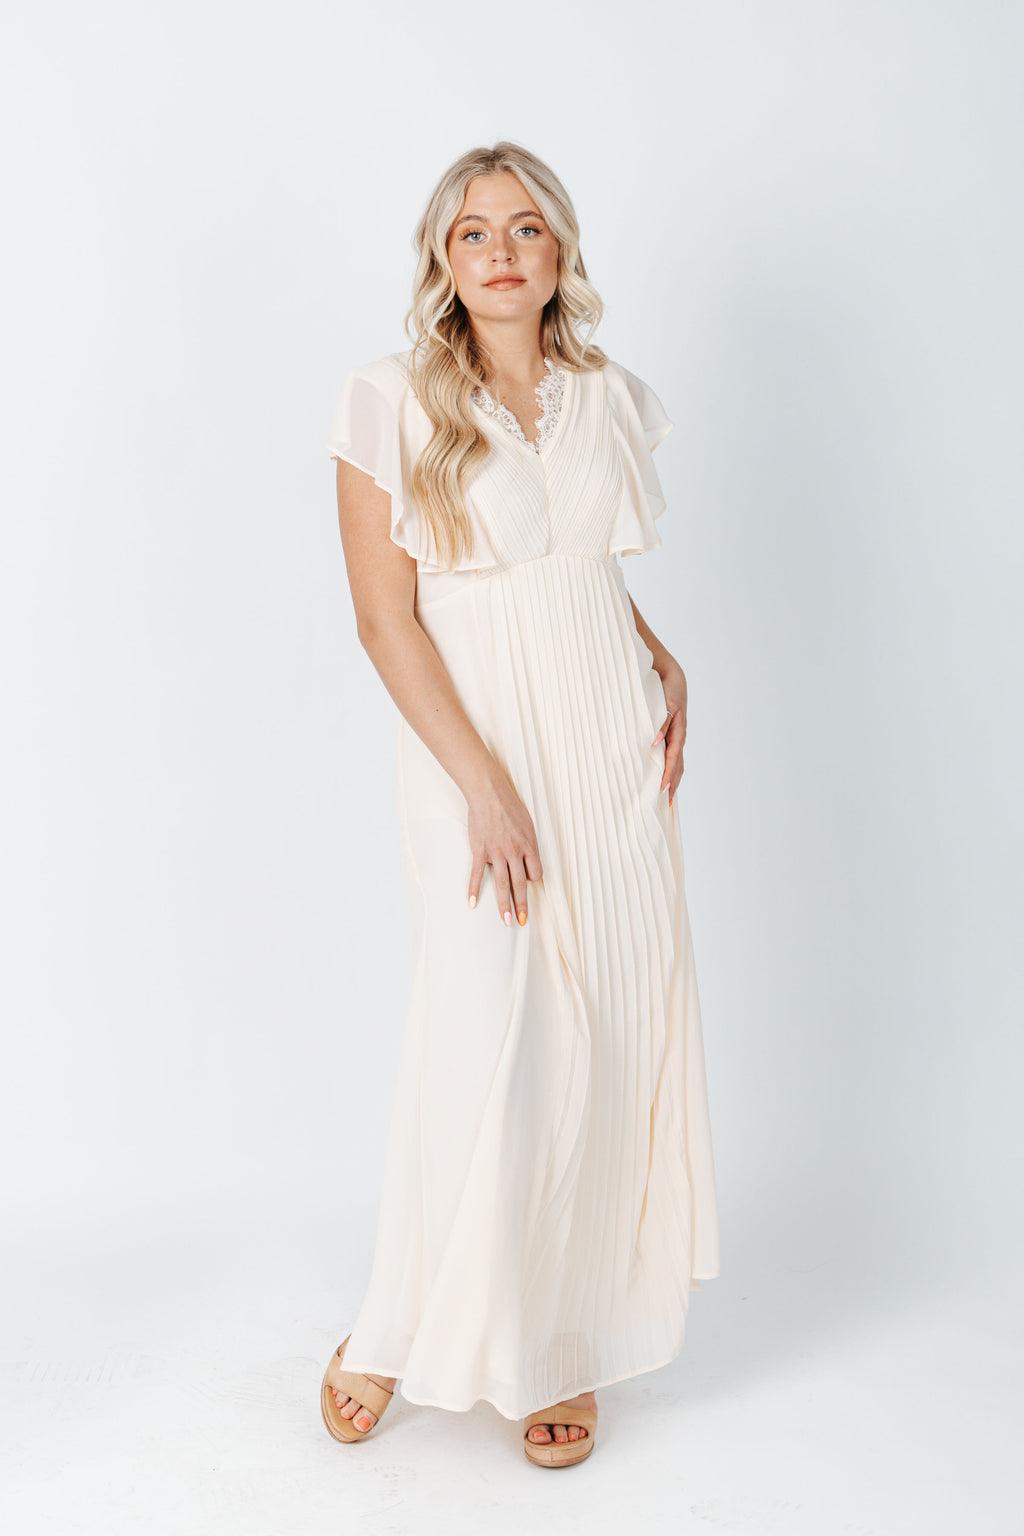 The Blaine Pleated Detail Dress in Cream, studio shoot; front view